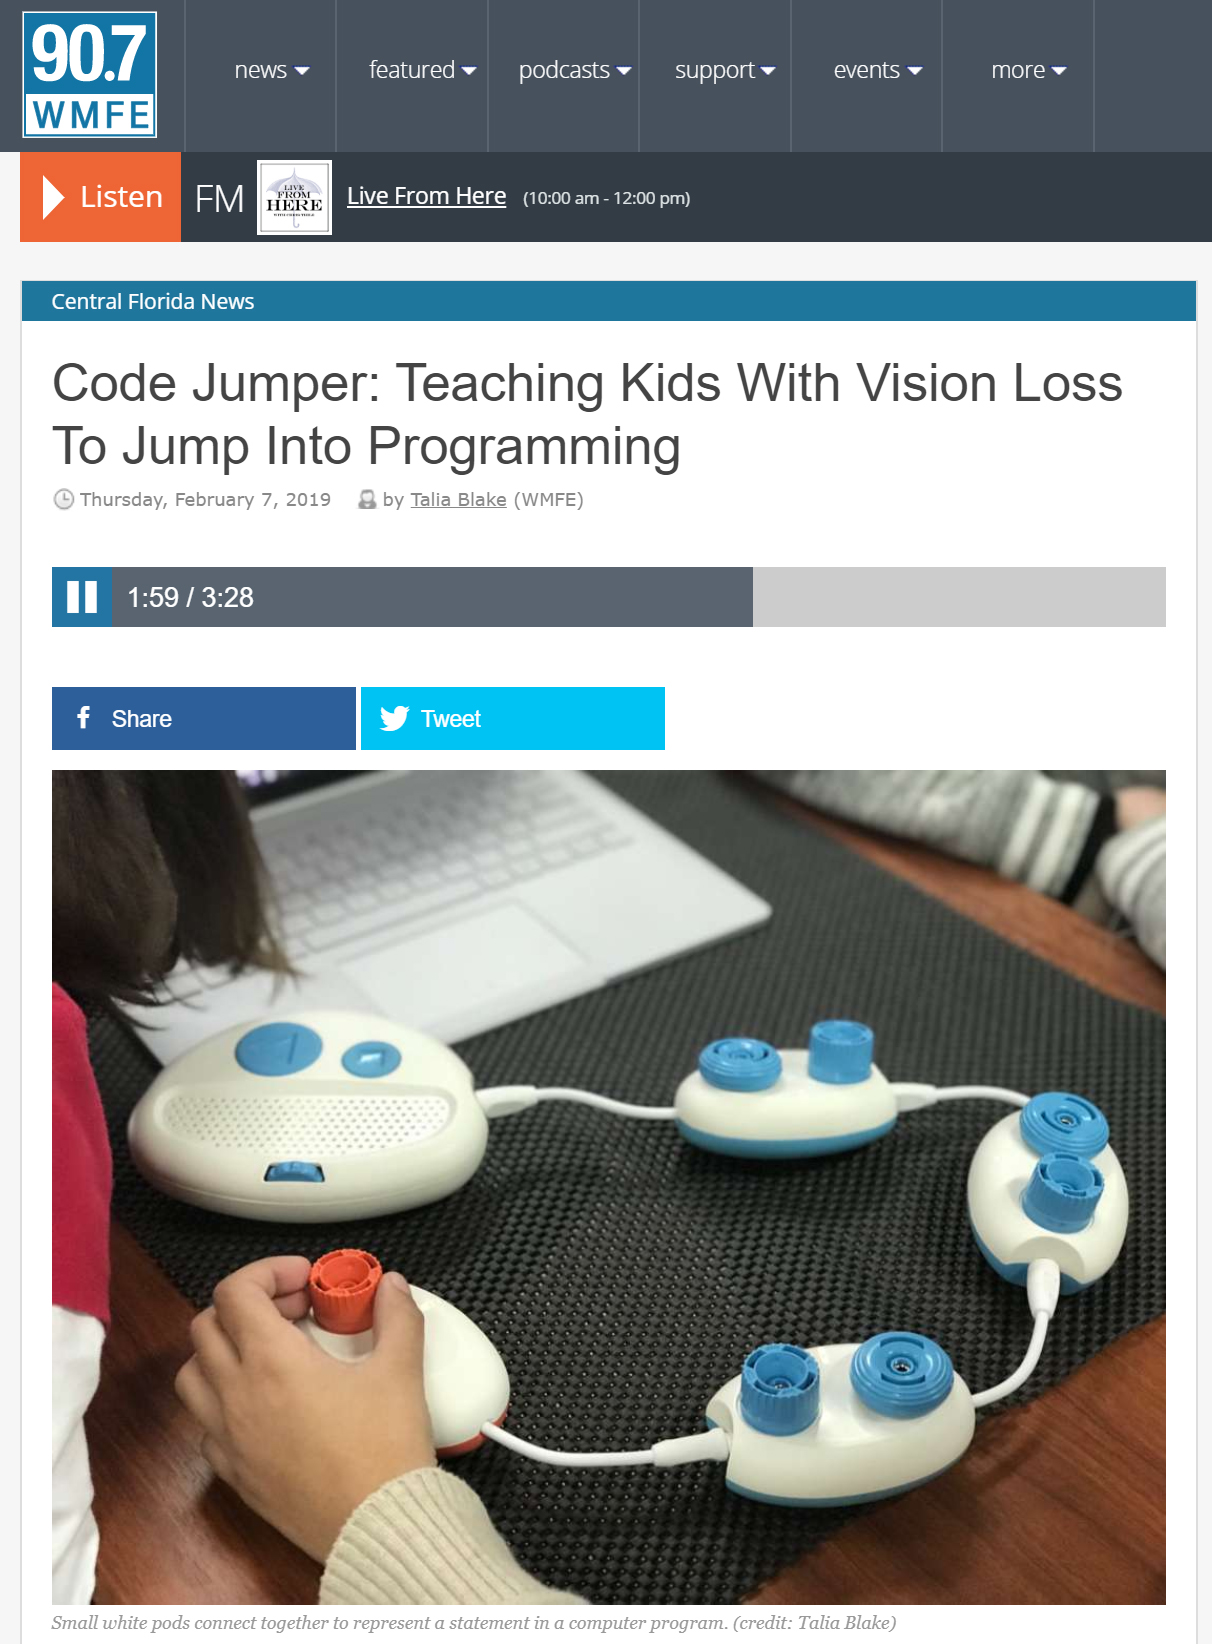 Screenshot of the wmfe article about Code Jumper